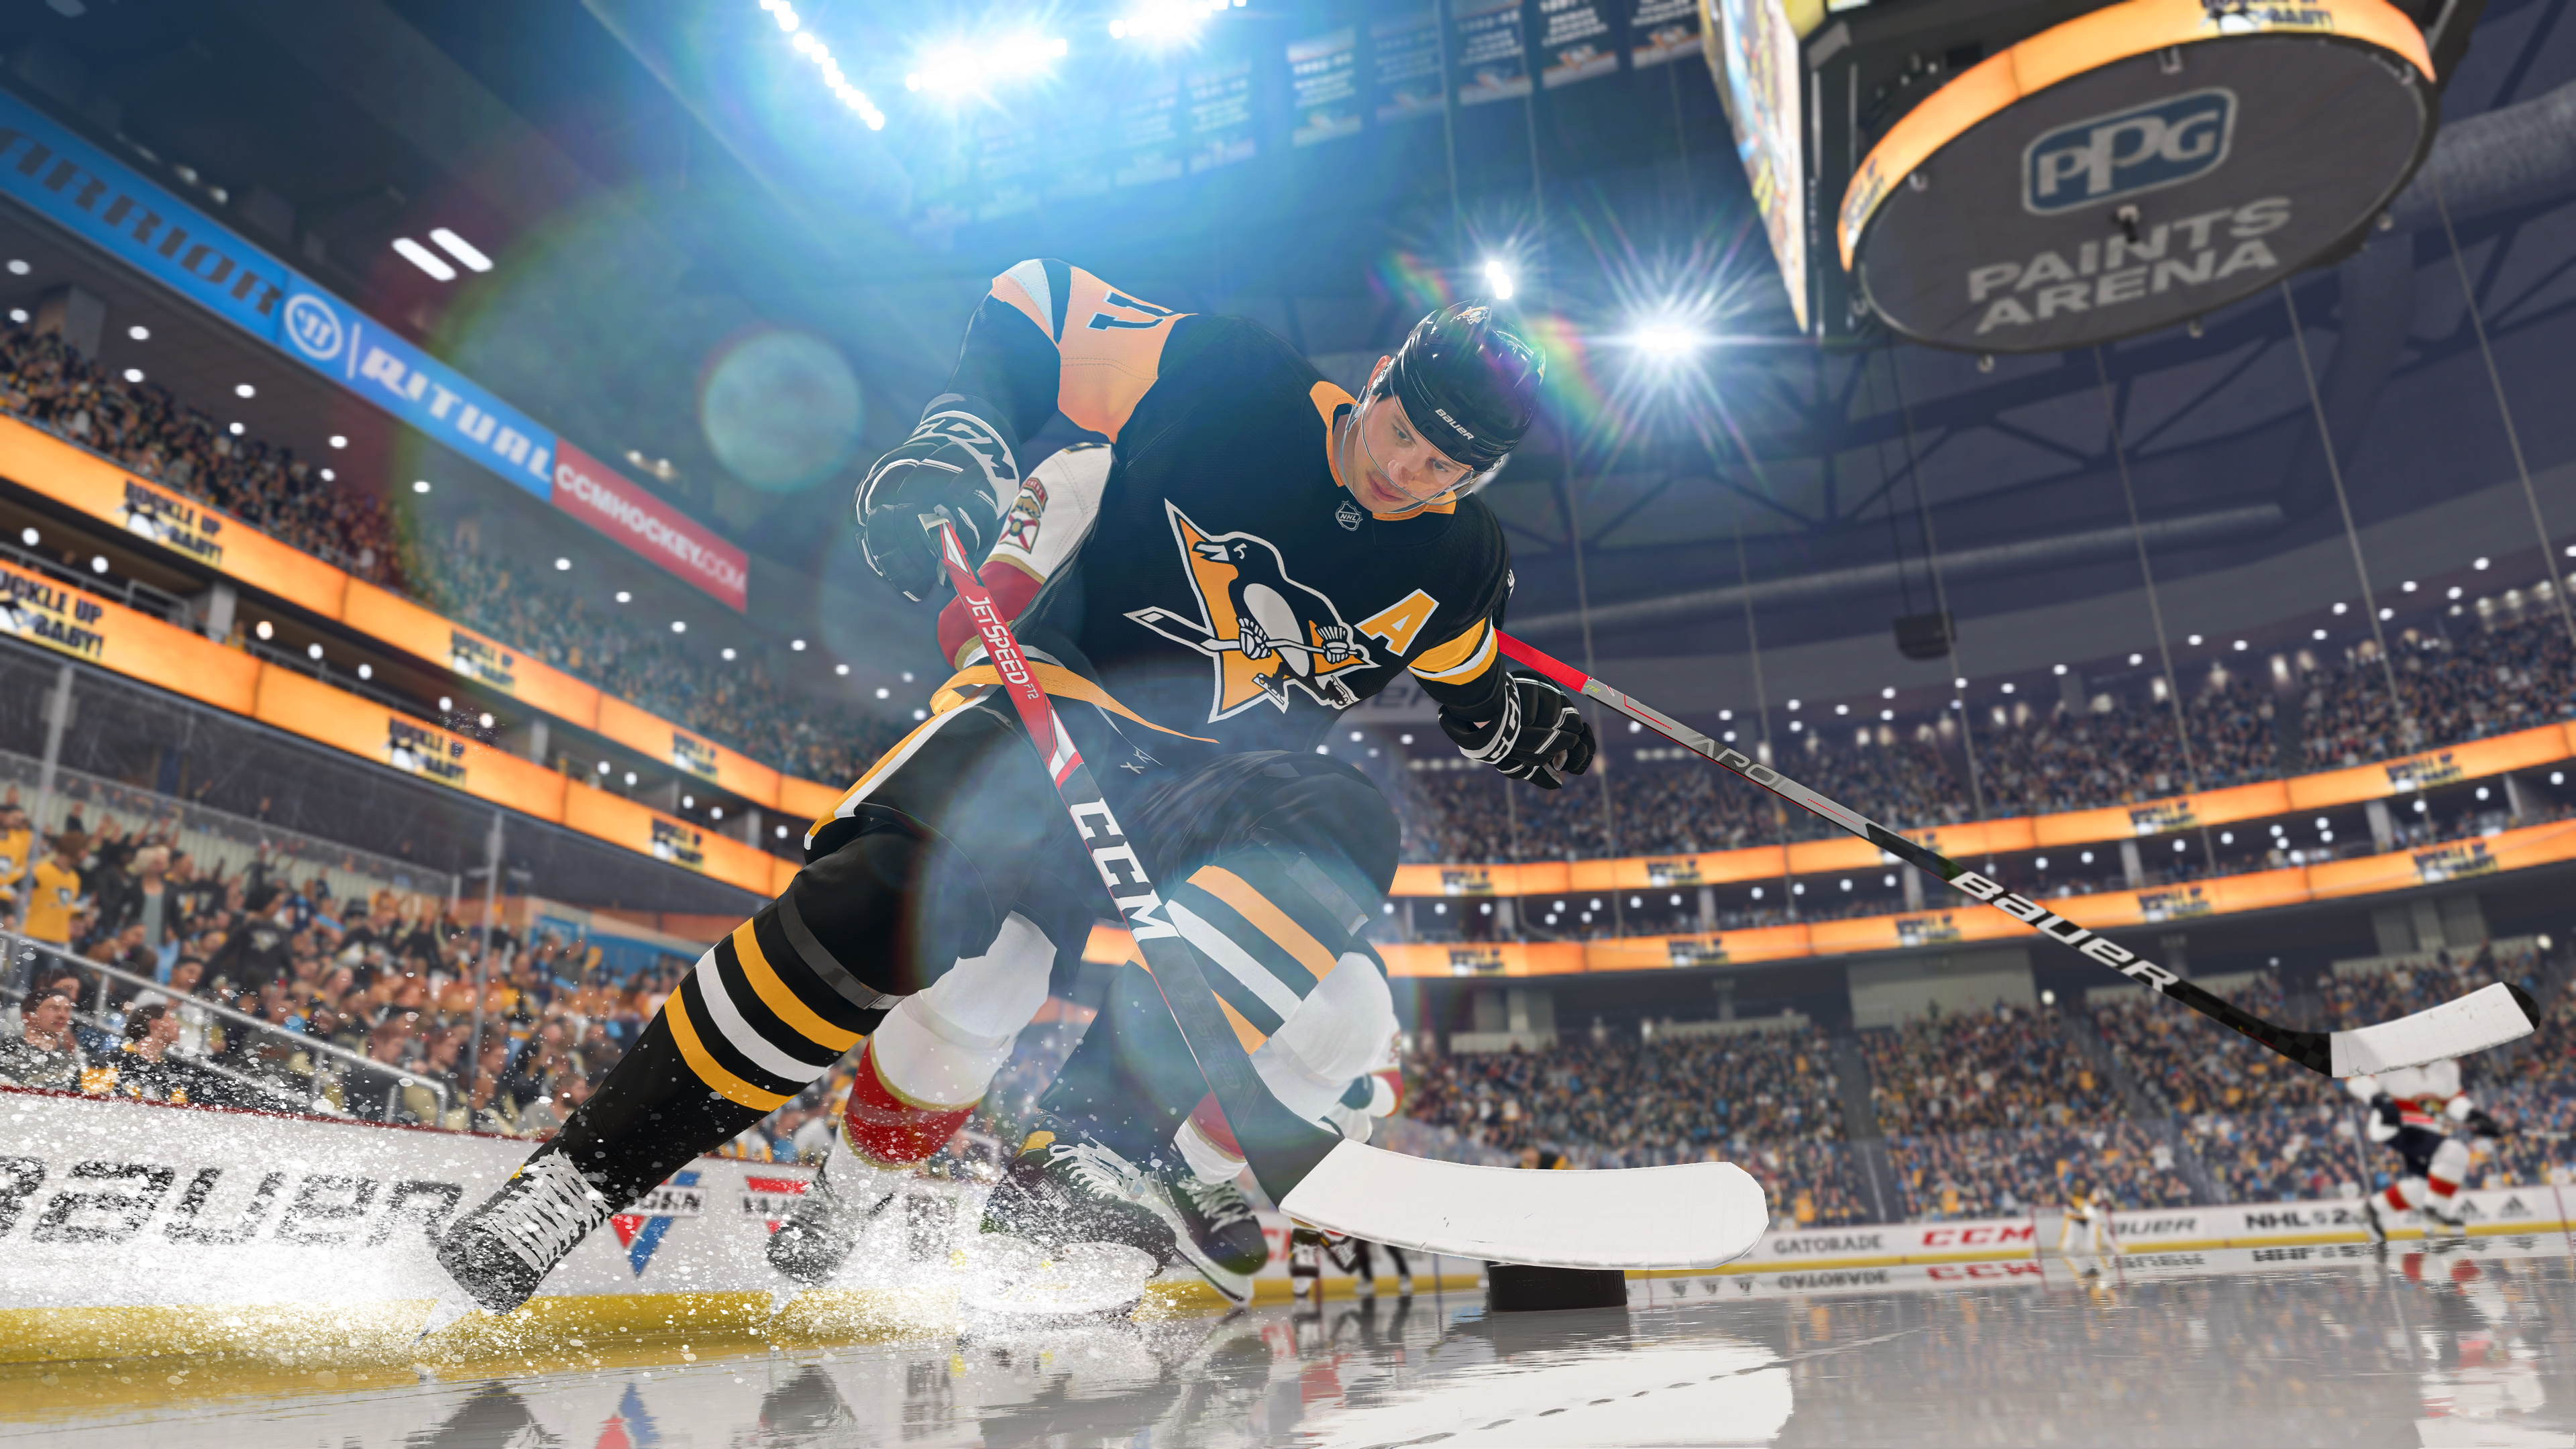 Evgeni Malkin of the Pittsburgh Penguins protects the puck against a member of the Florida Panthers in NHL 22